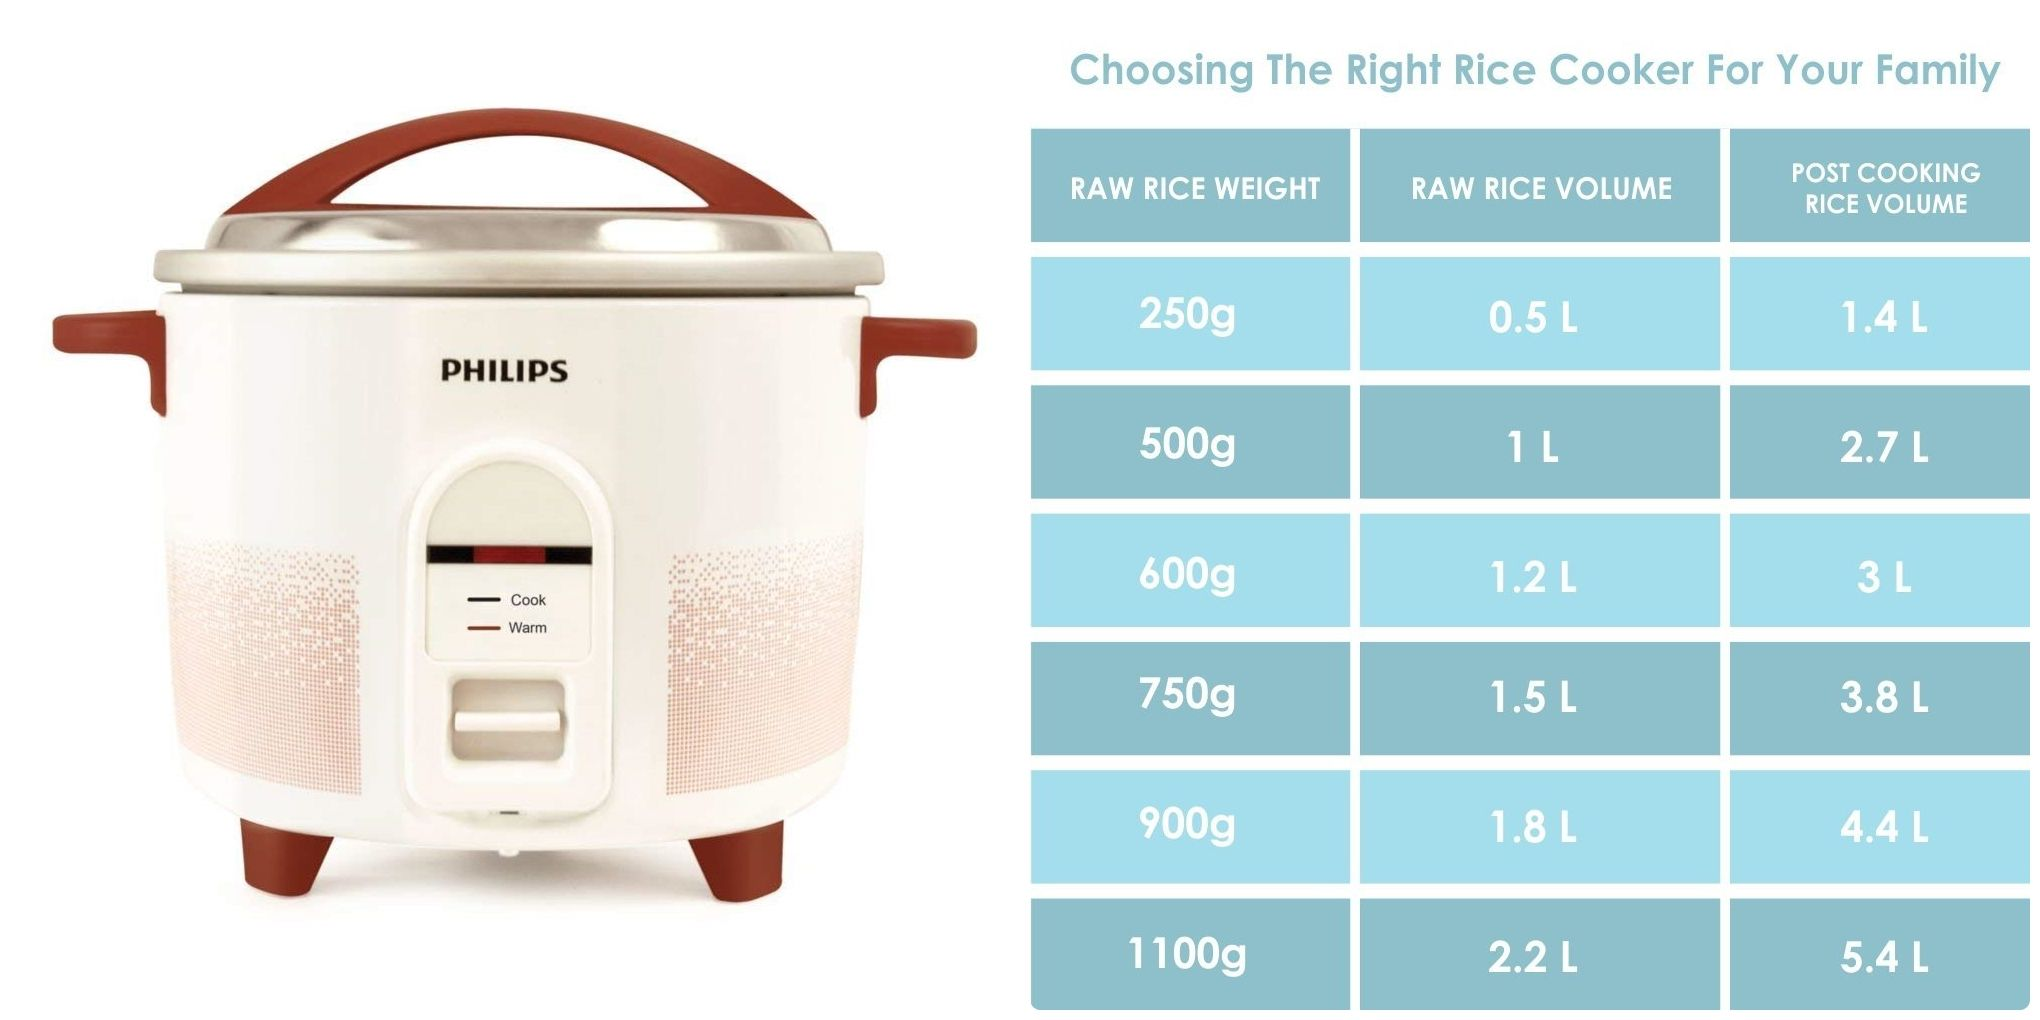 3 Best Electric Rice Cooker Under 3000 Rupees In India Market Rice Cooker Kitchen Appliances Brands Top Kitchen Appliance Brands